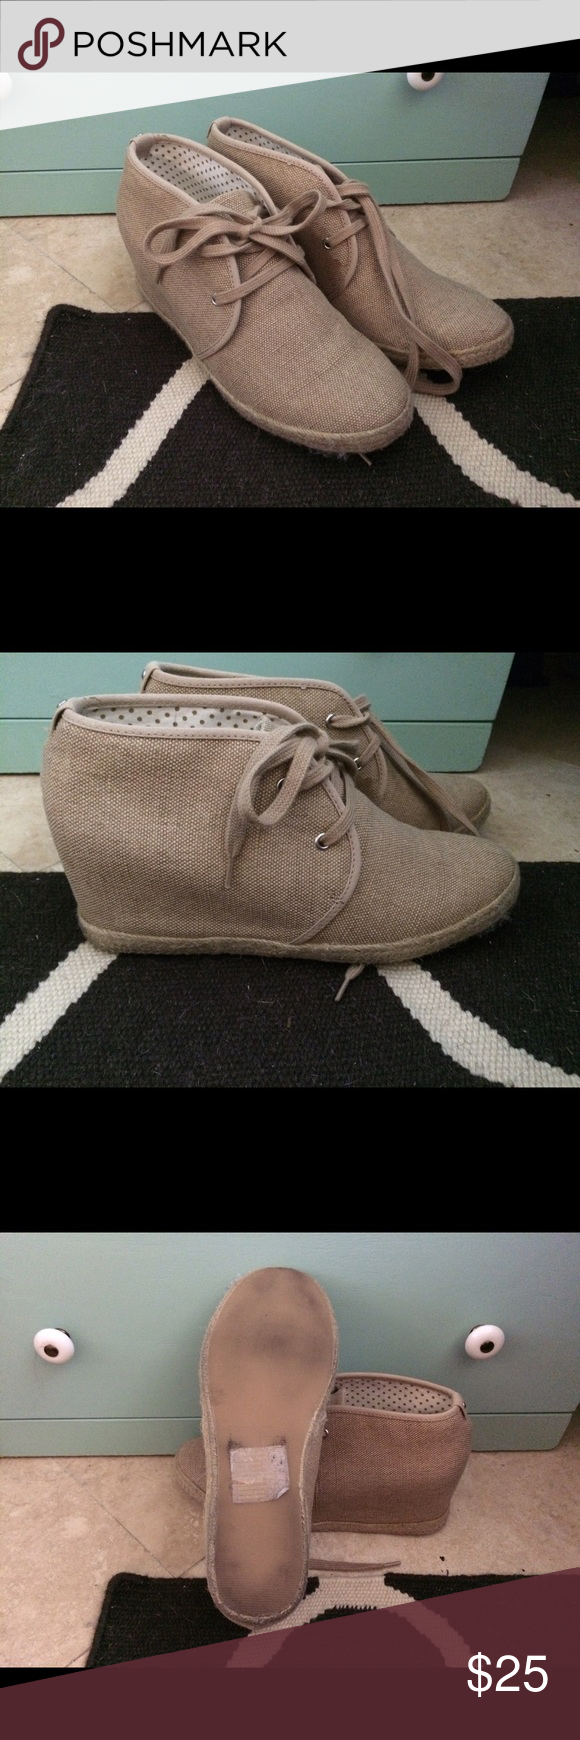 Mudd wedges size 9.5 Super cute lace up wedges! Only worn once or twice Mudd Shoes Wedges